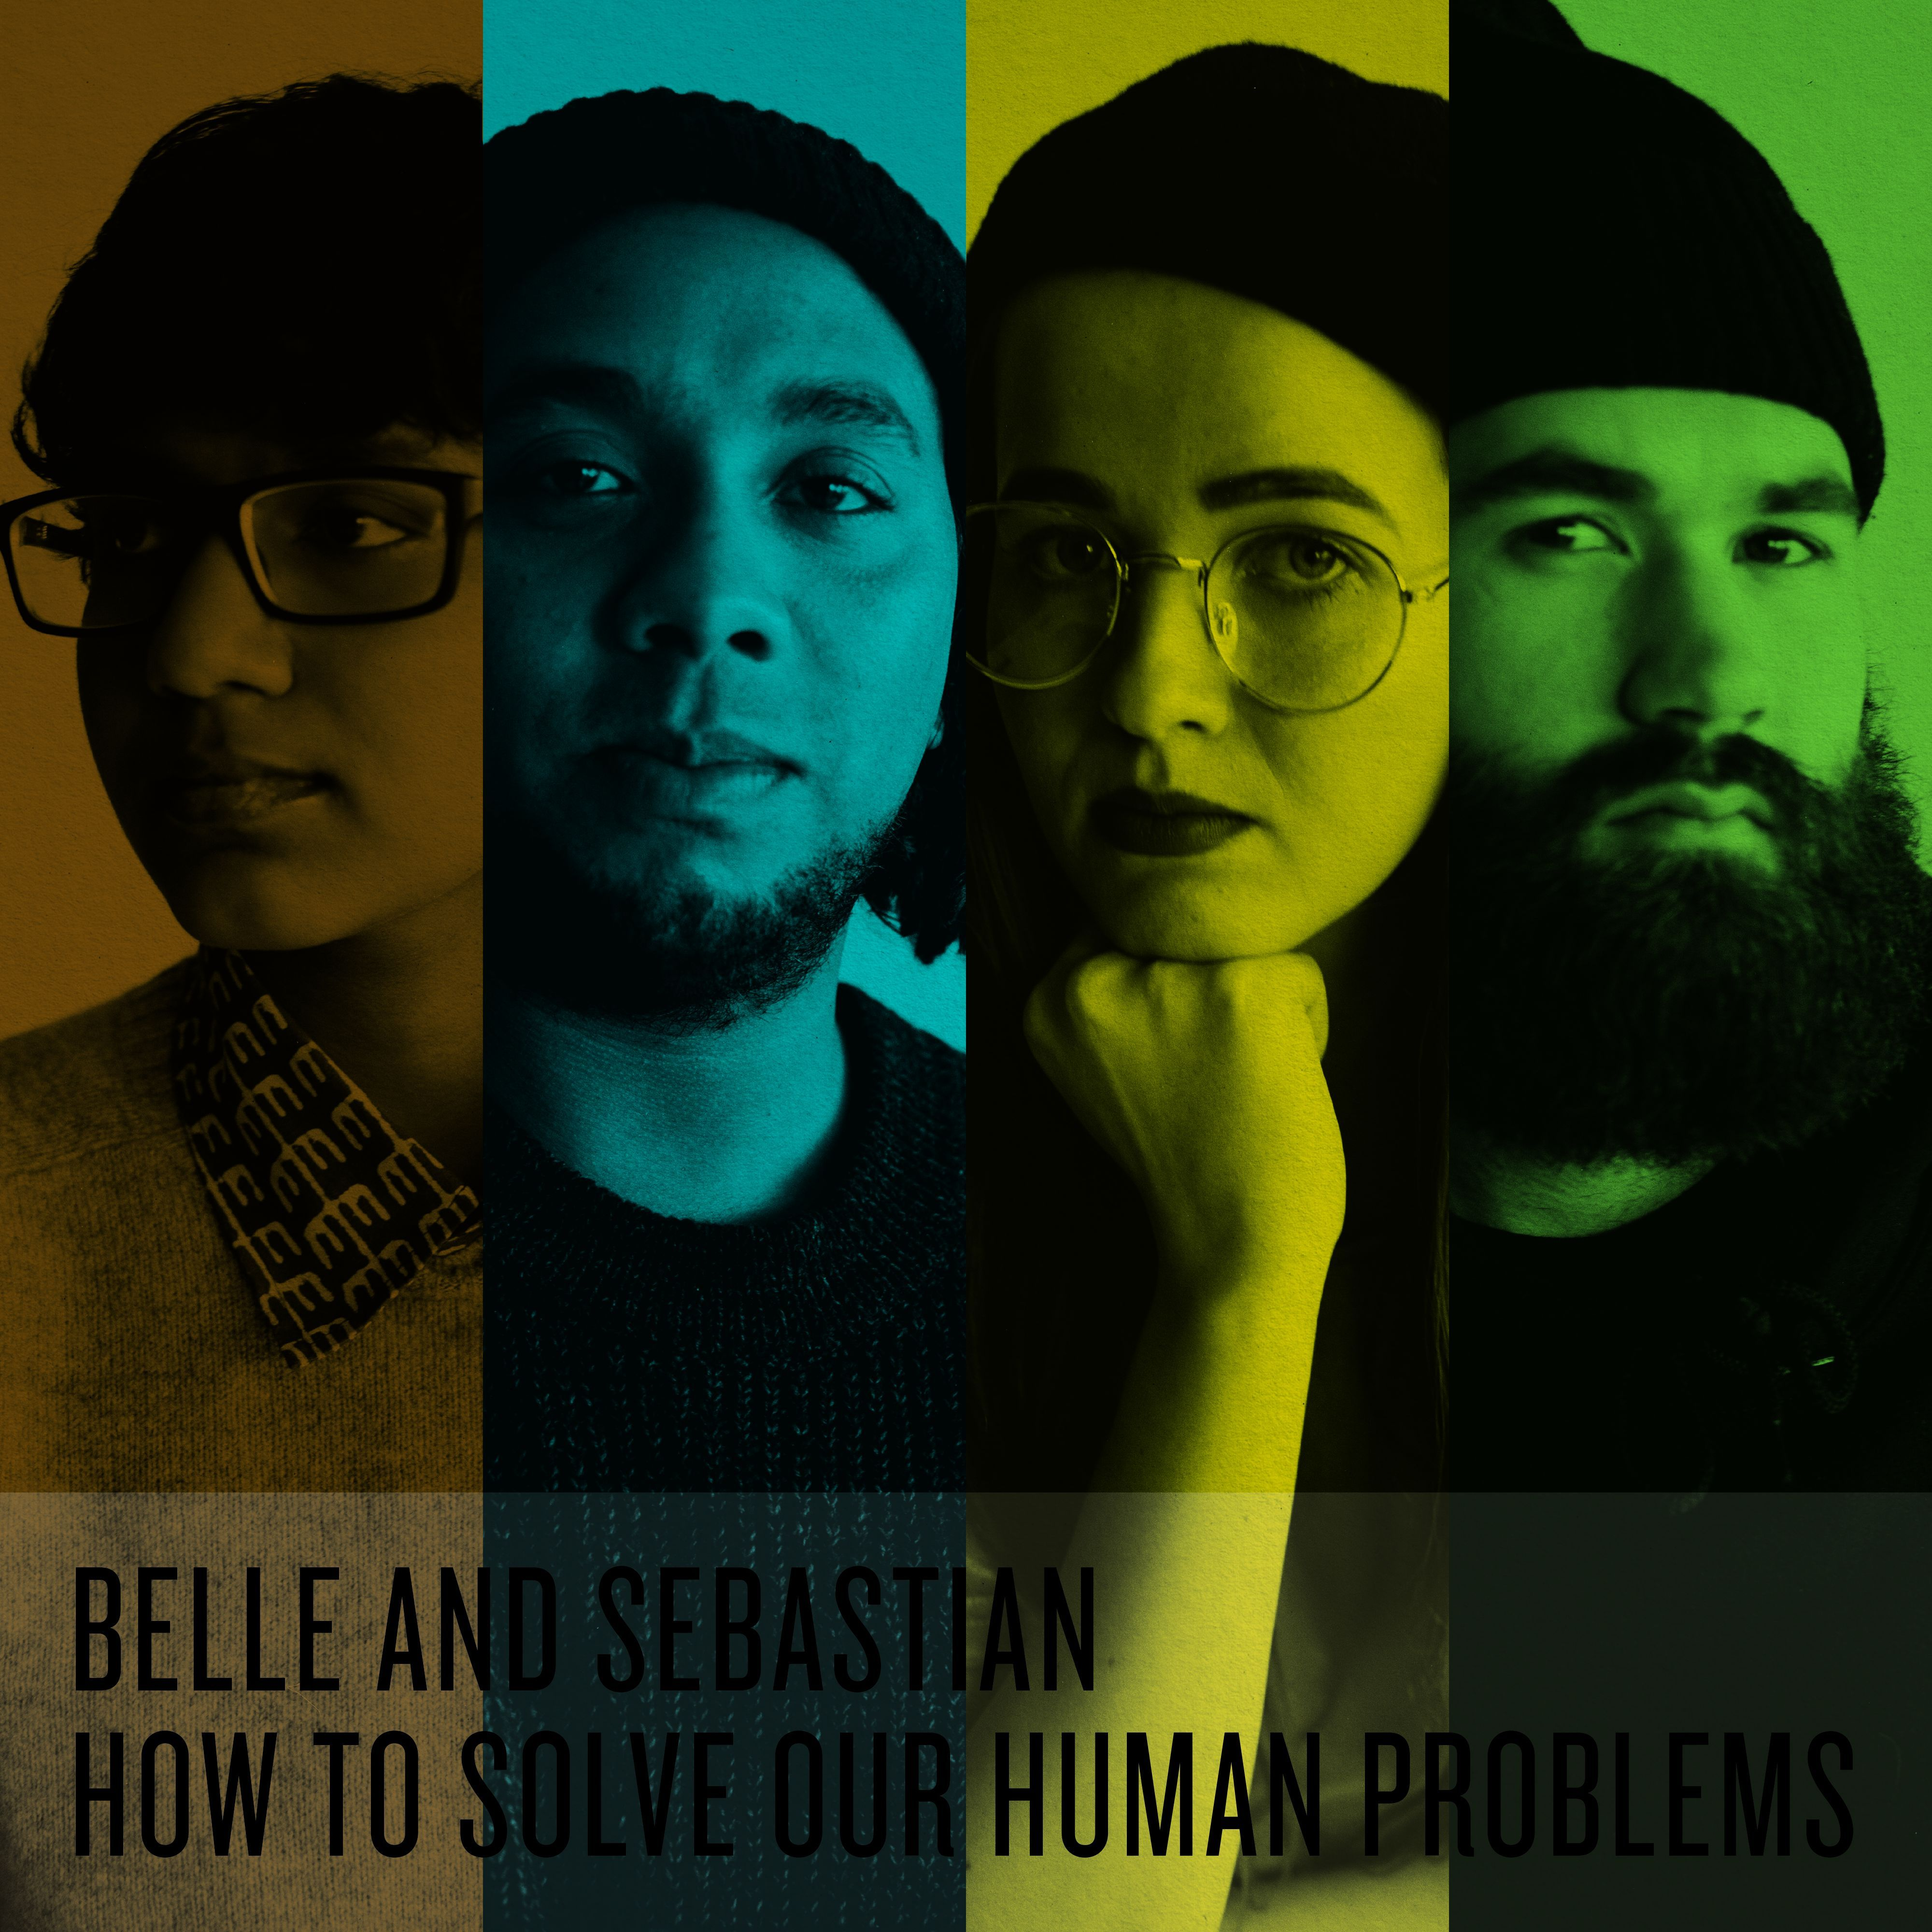 Belle And Sebastian - How To Solve Our Human Problems album cover